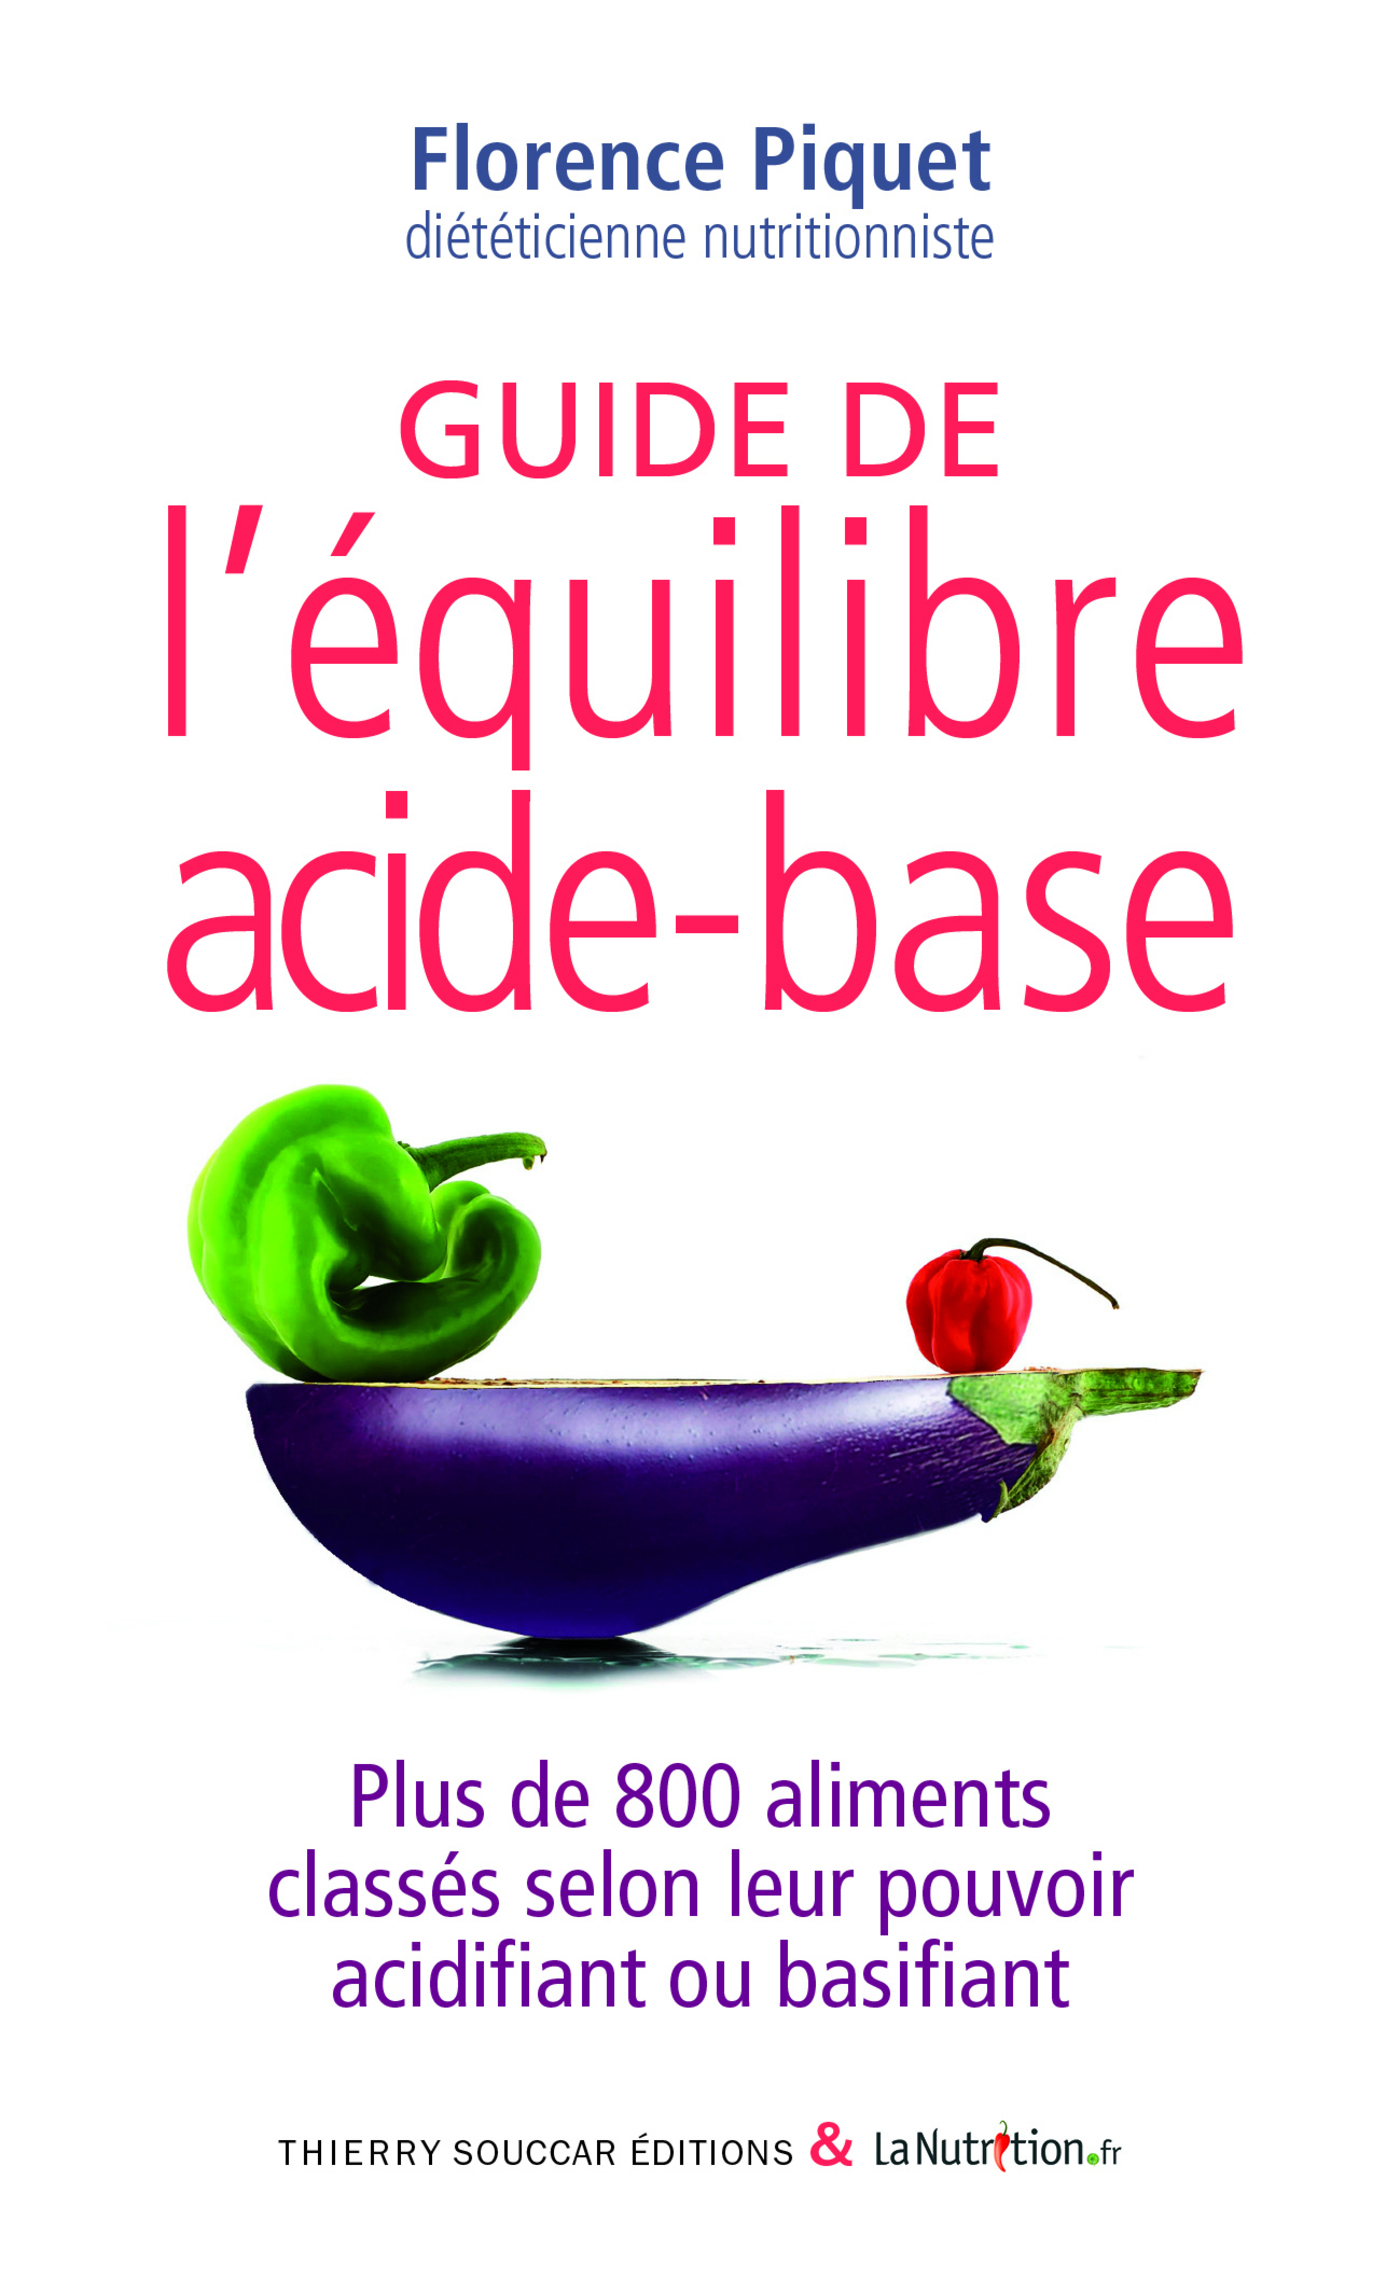 Guide de l'équilibre acide-base